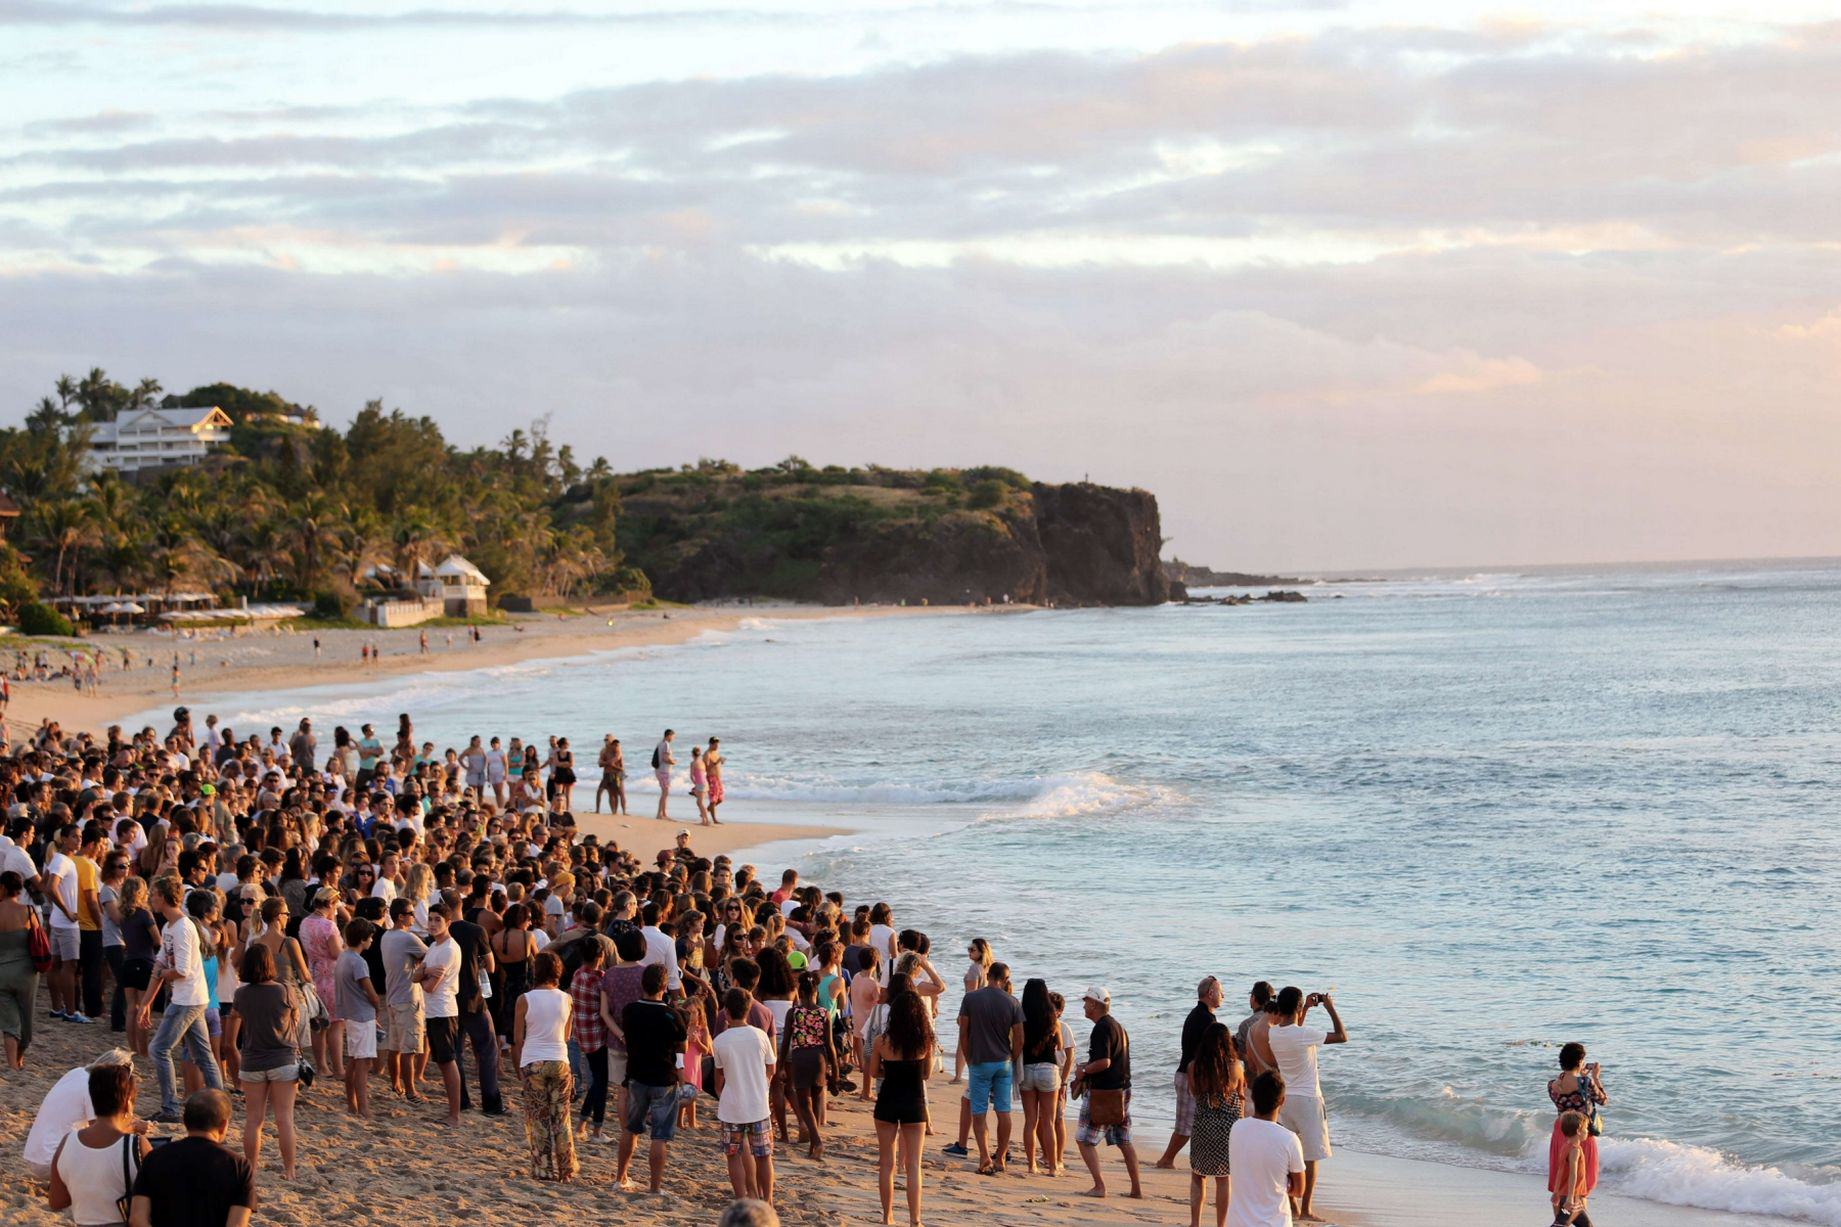 Hundreds Give Beachfront Tribute To Young Surfing Champ Killed By Shark Shark attack 1